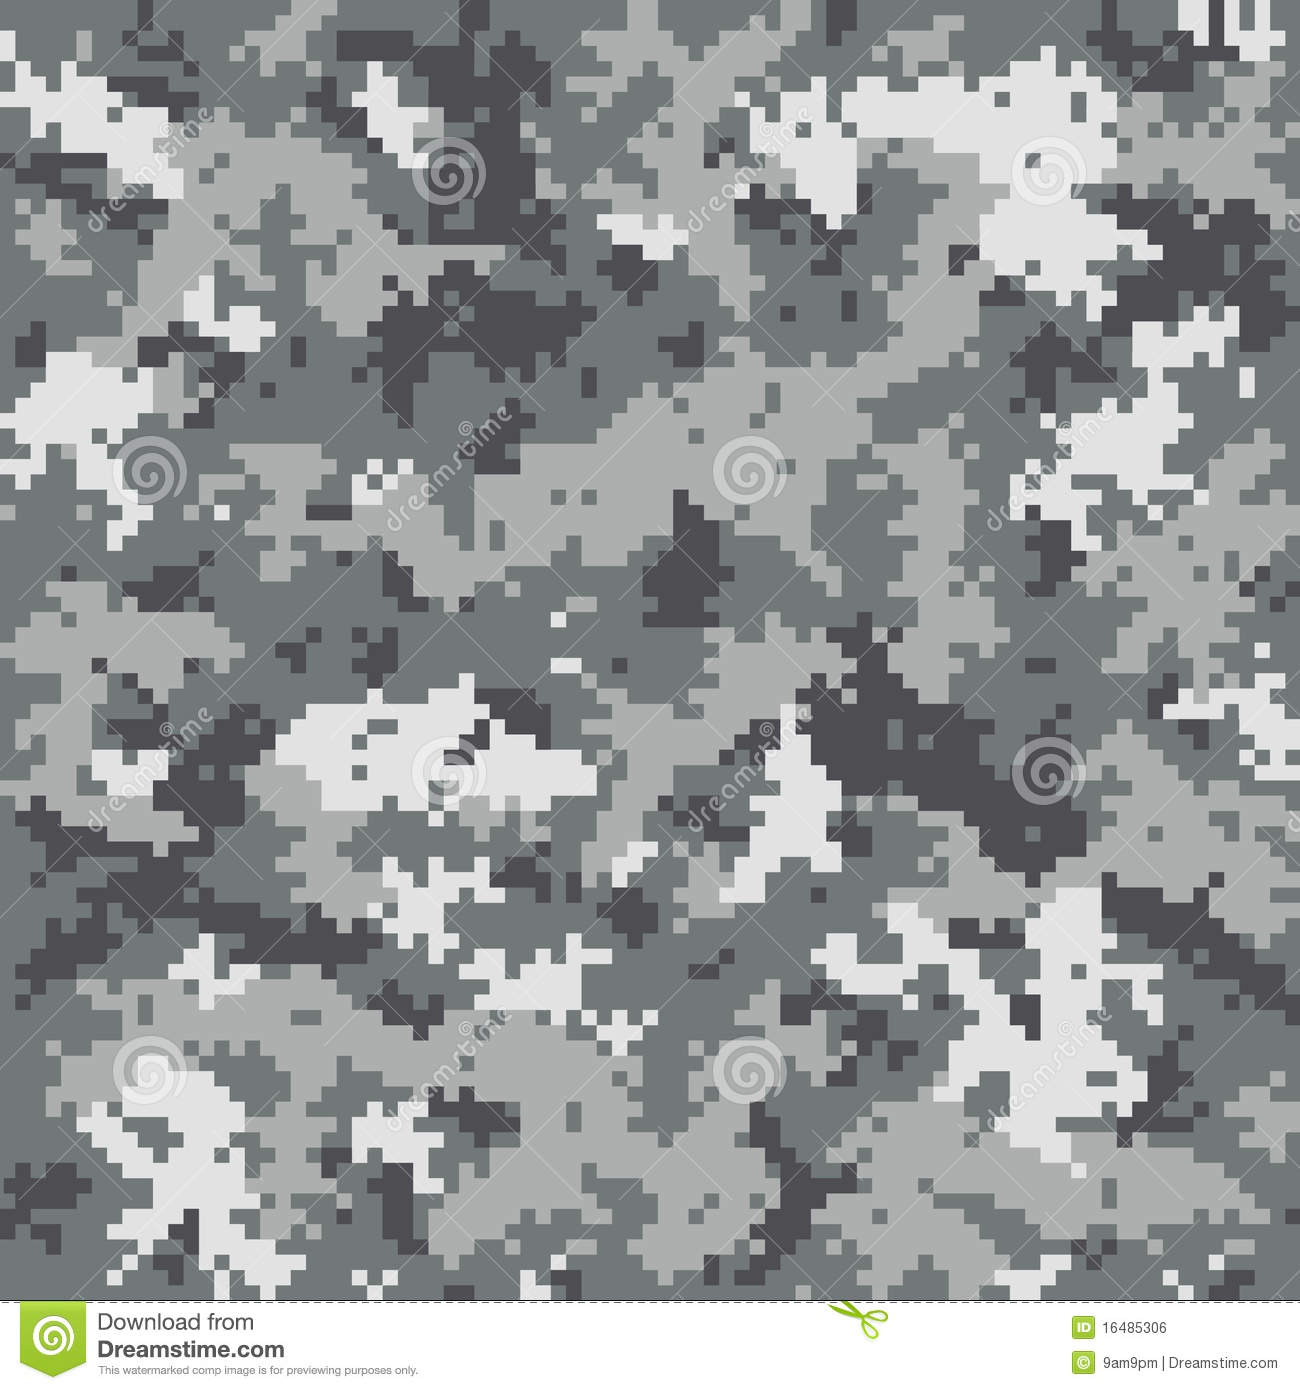 ACU Digital Camouflage Pattern Royalty Free Stock Images.